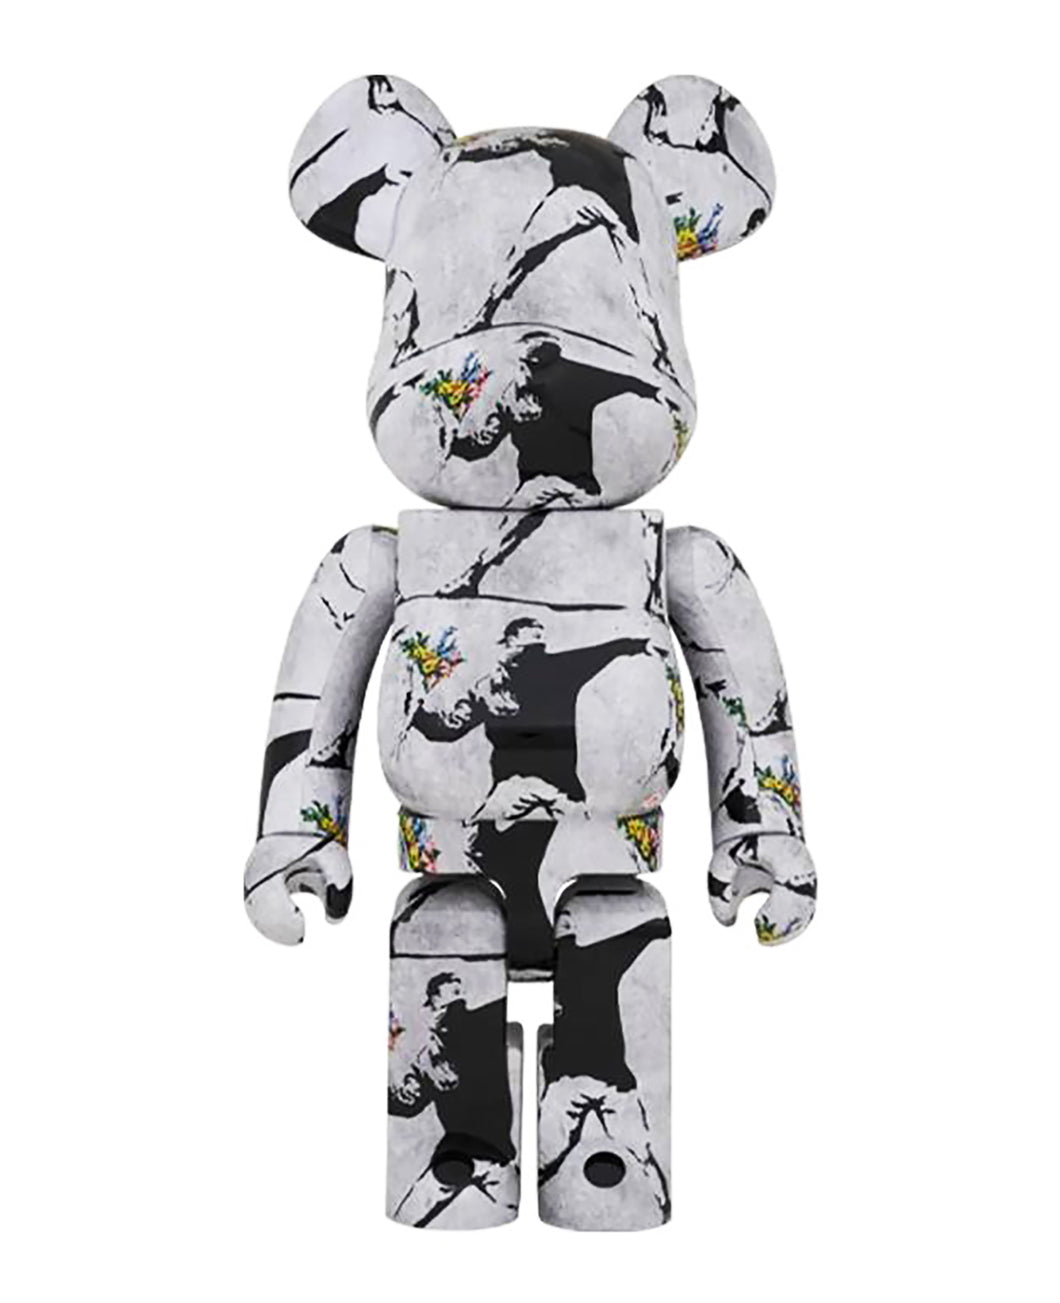 BANKSY (after) x Be@rbrick 'Flower Thrower' Rare BB